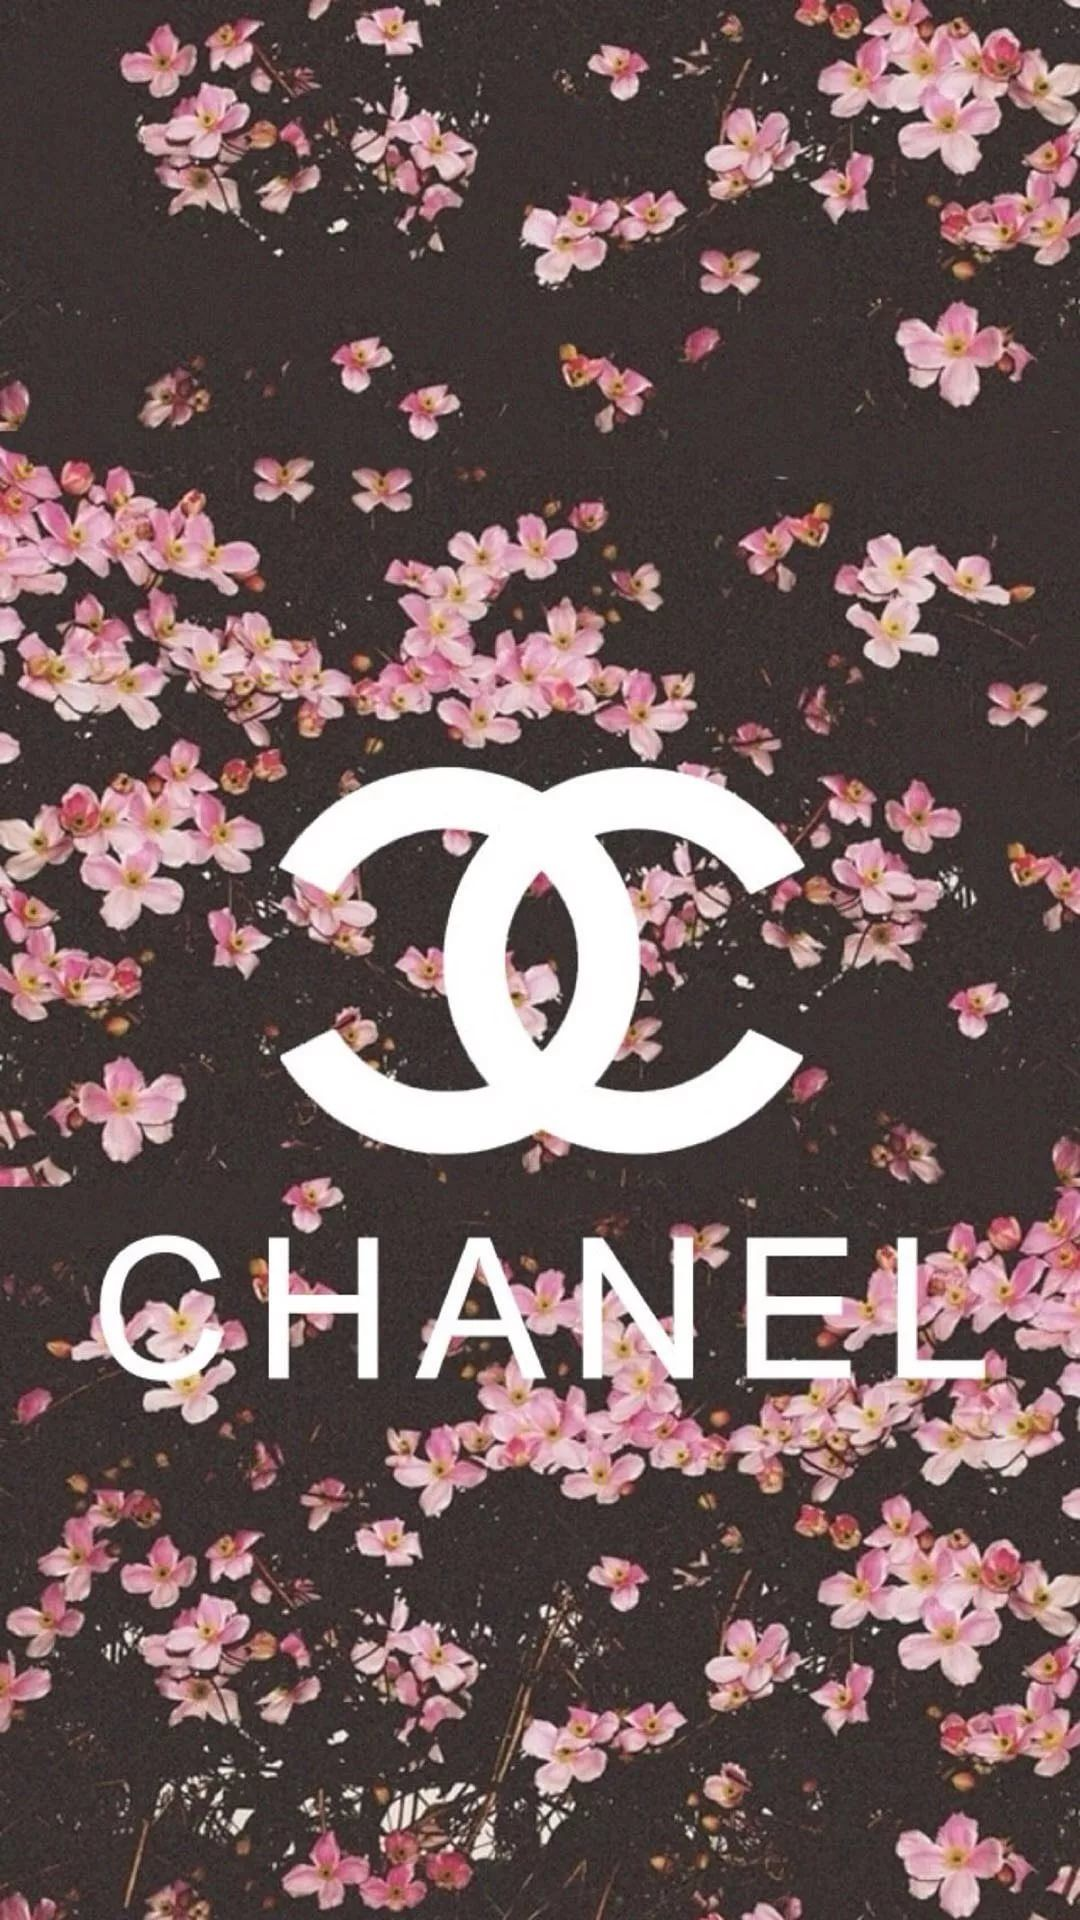 Chanel Background hd wallpaper